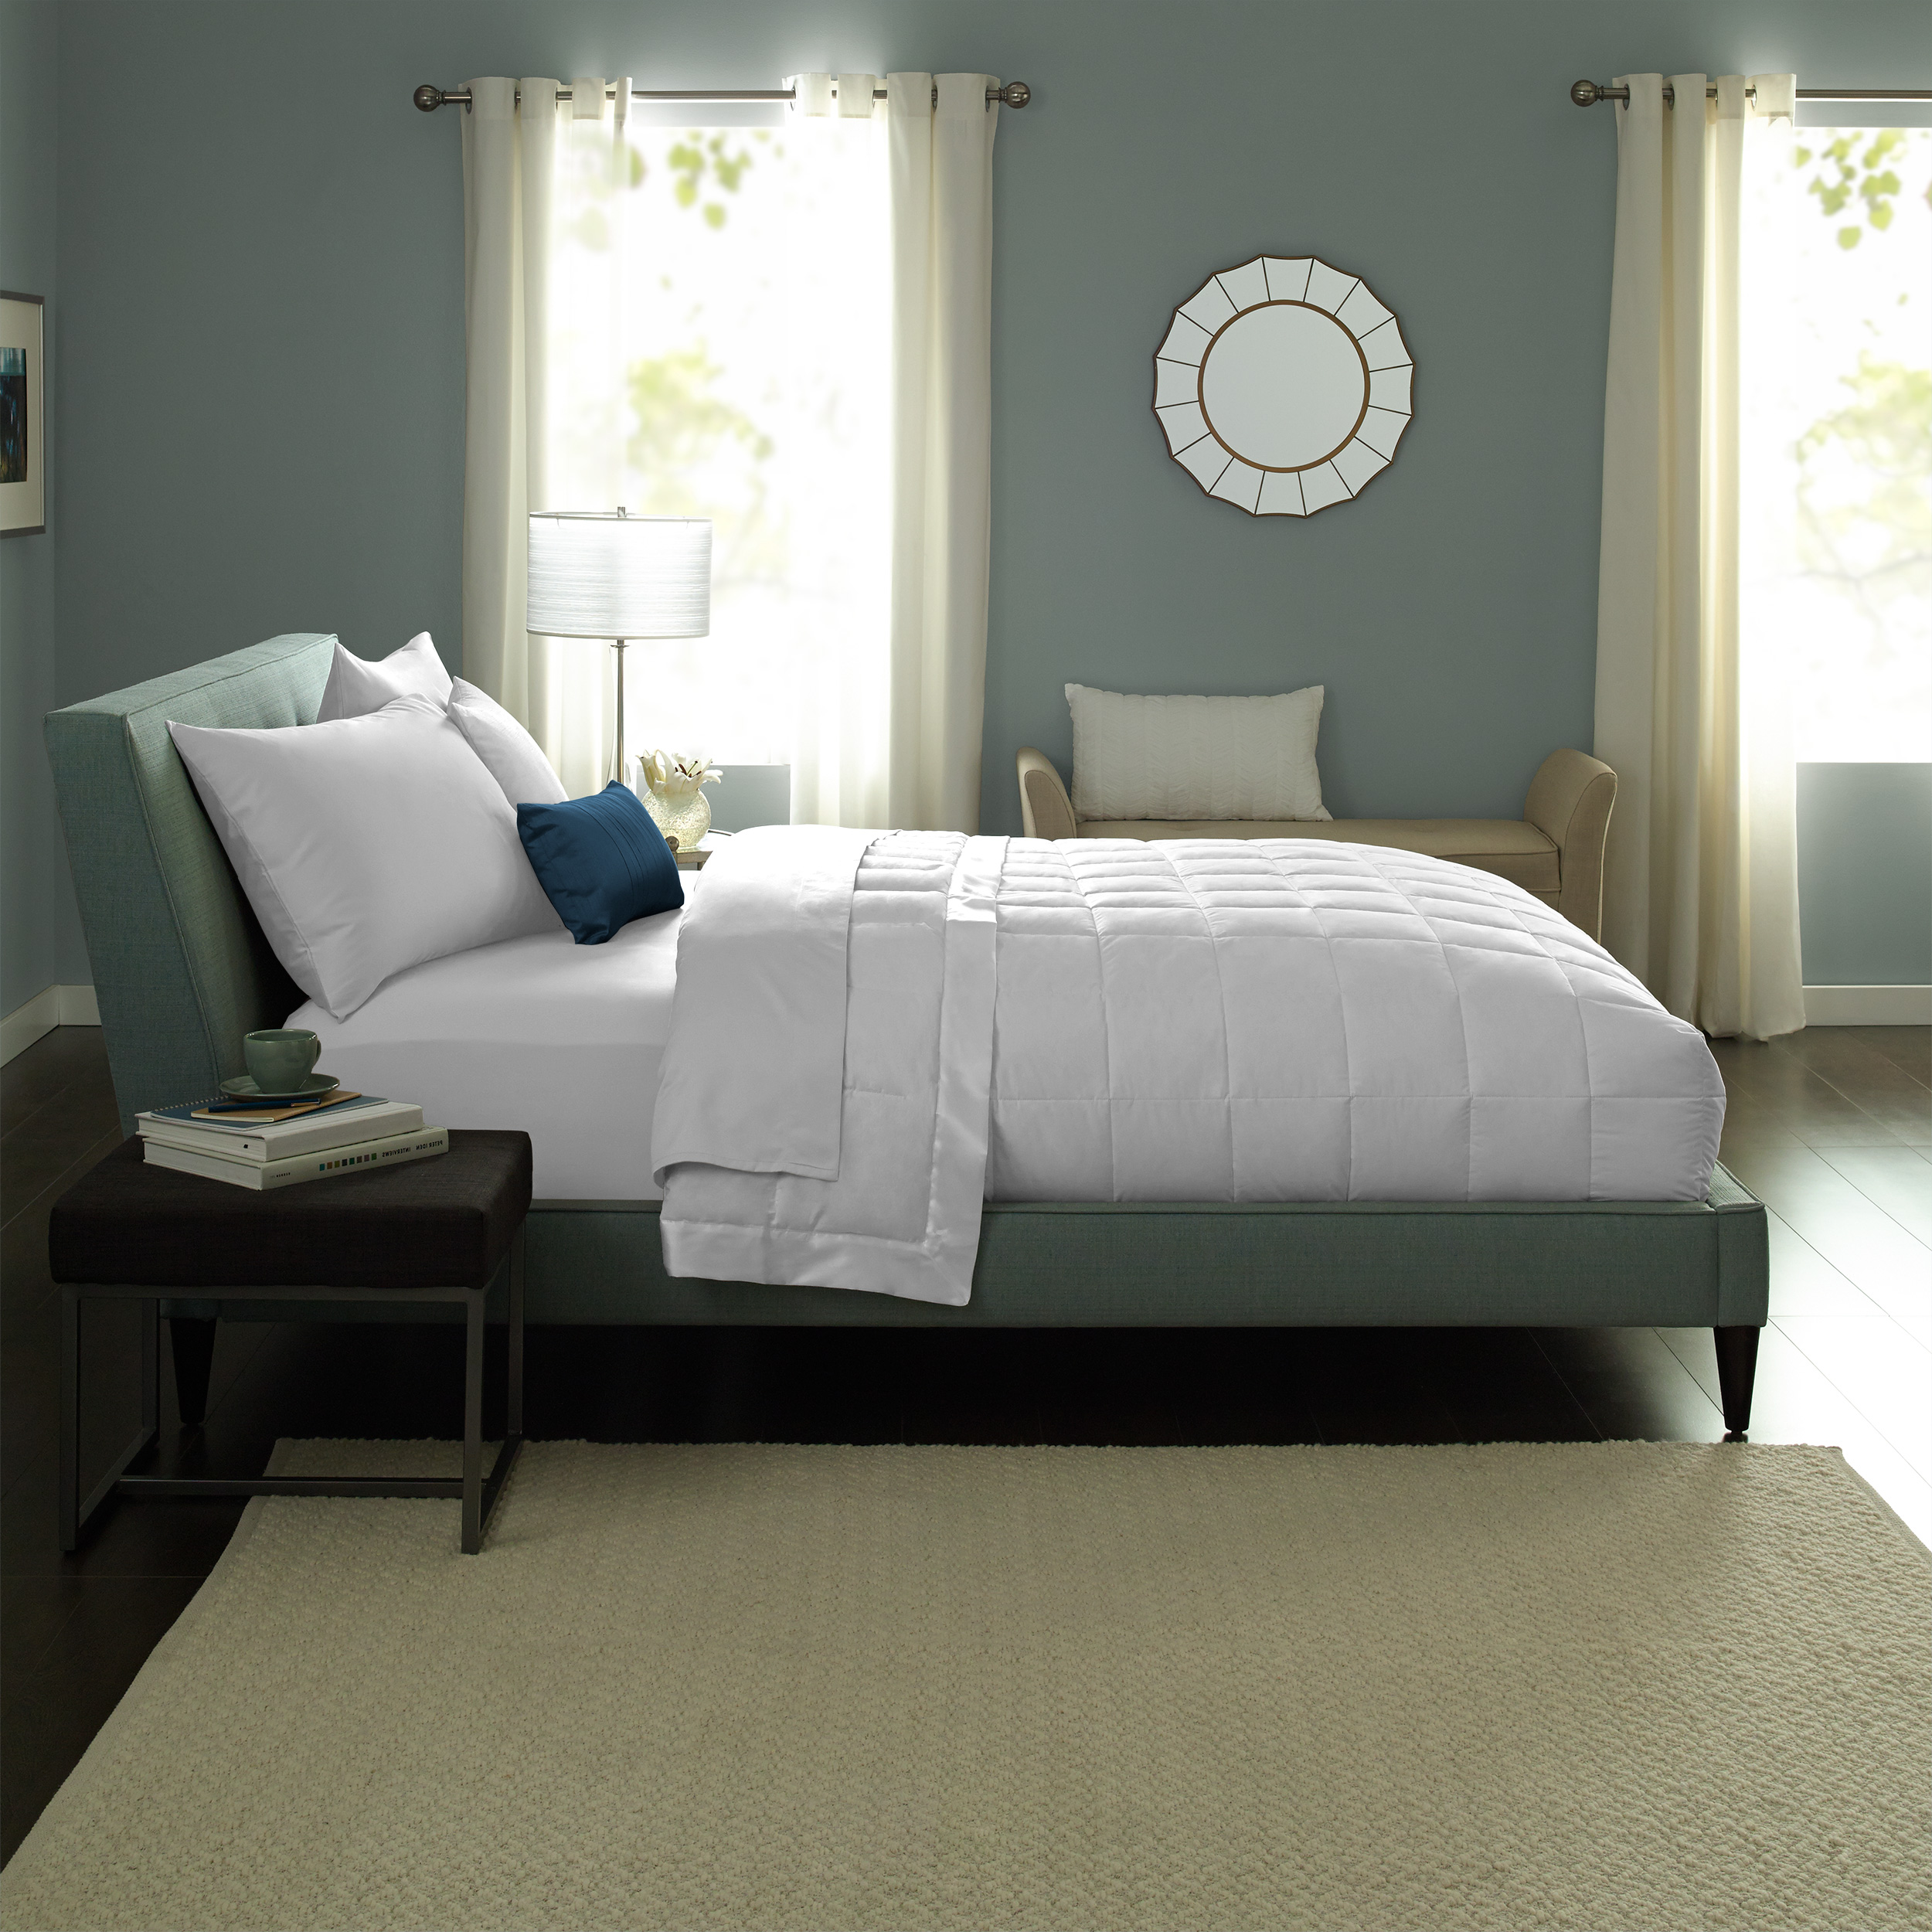 coast down attractive bedroom classic pacific for charming with comforter design